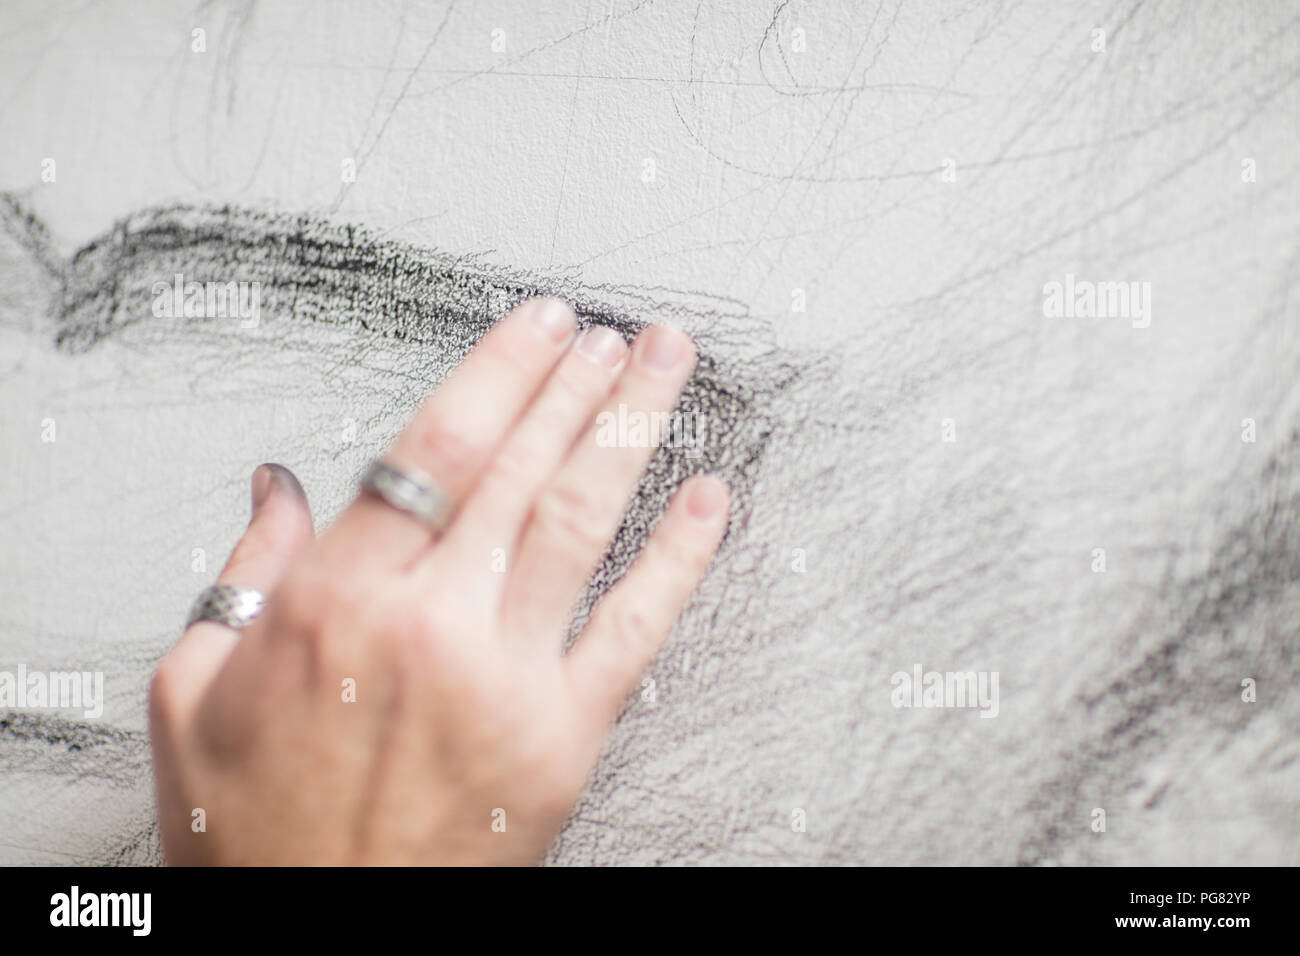 Artist's hand touching drawing - Stock Image